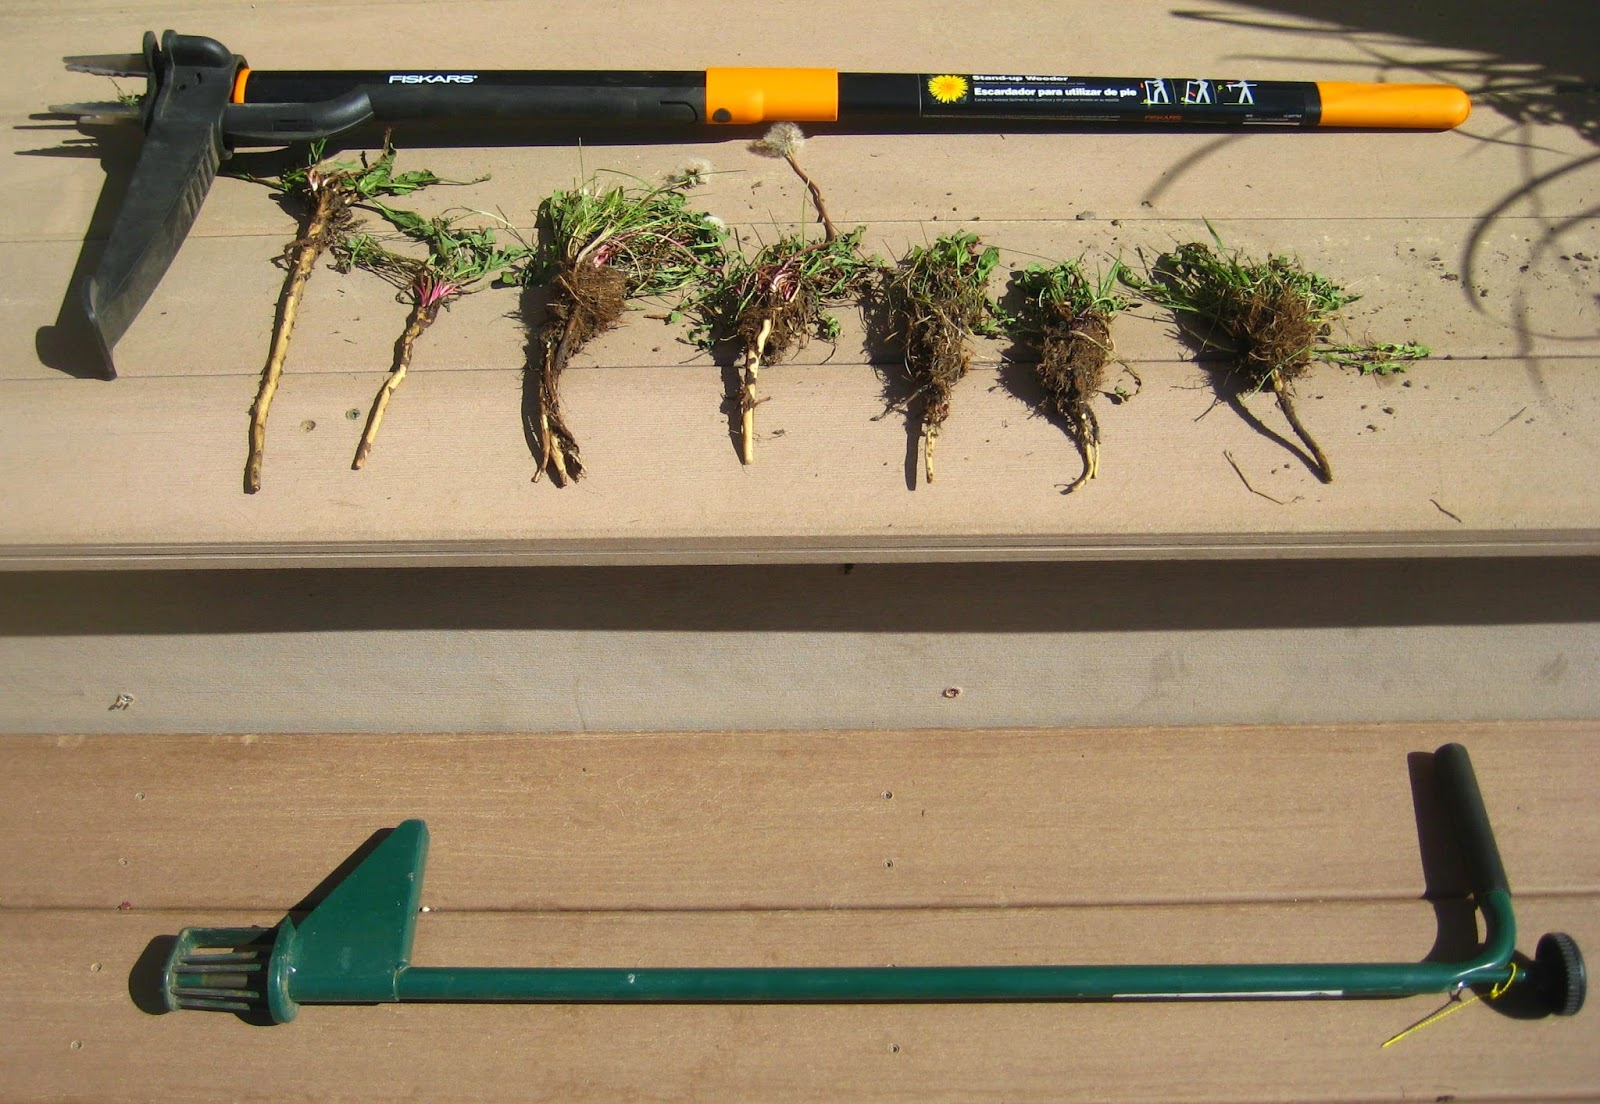 Weed-pulling tools